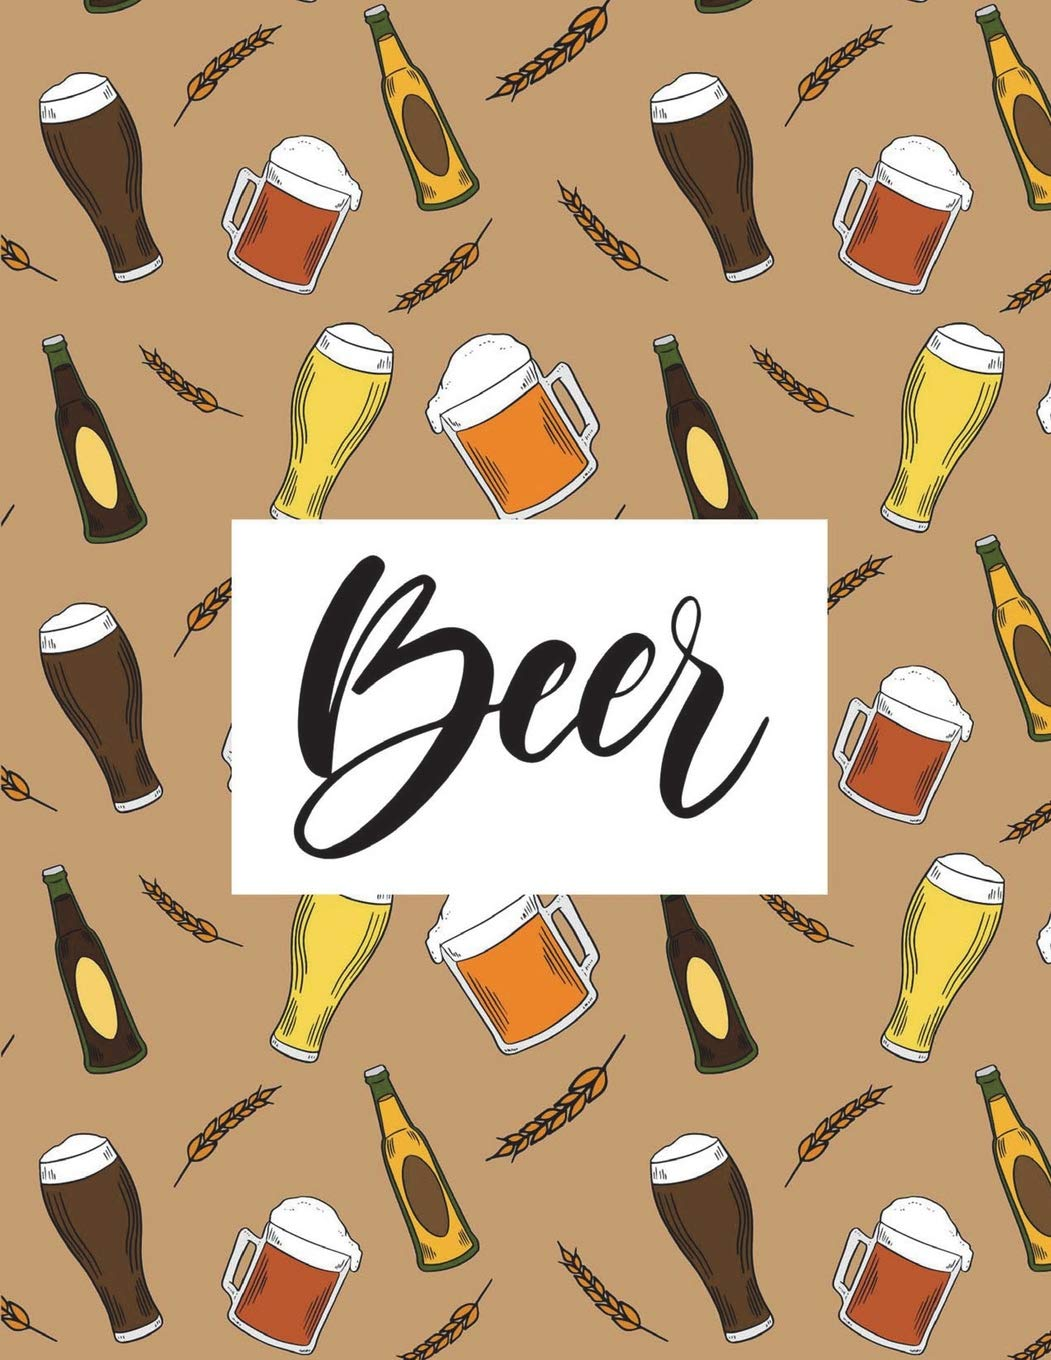 Read Online Beer: Alcohol Drinking Journal Notebook Ruled Lined Book Page Writing Women Men Diary Record Plan Note Pad Composition Notebook (121 Page, Large 8.5 x 11 Inches, Paperback) (Beer Notebook) (Volume 3) pdf epub